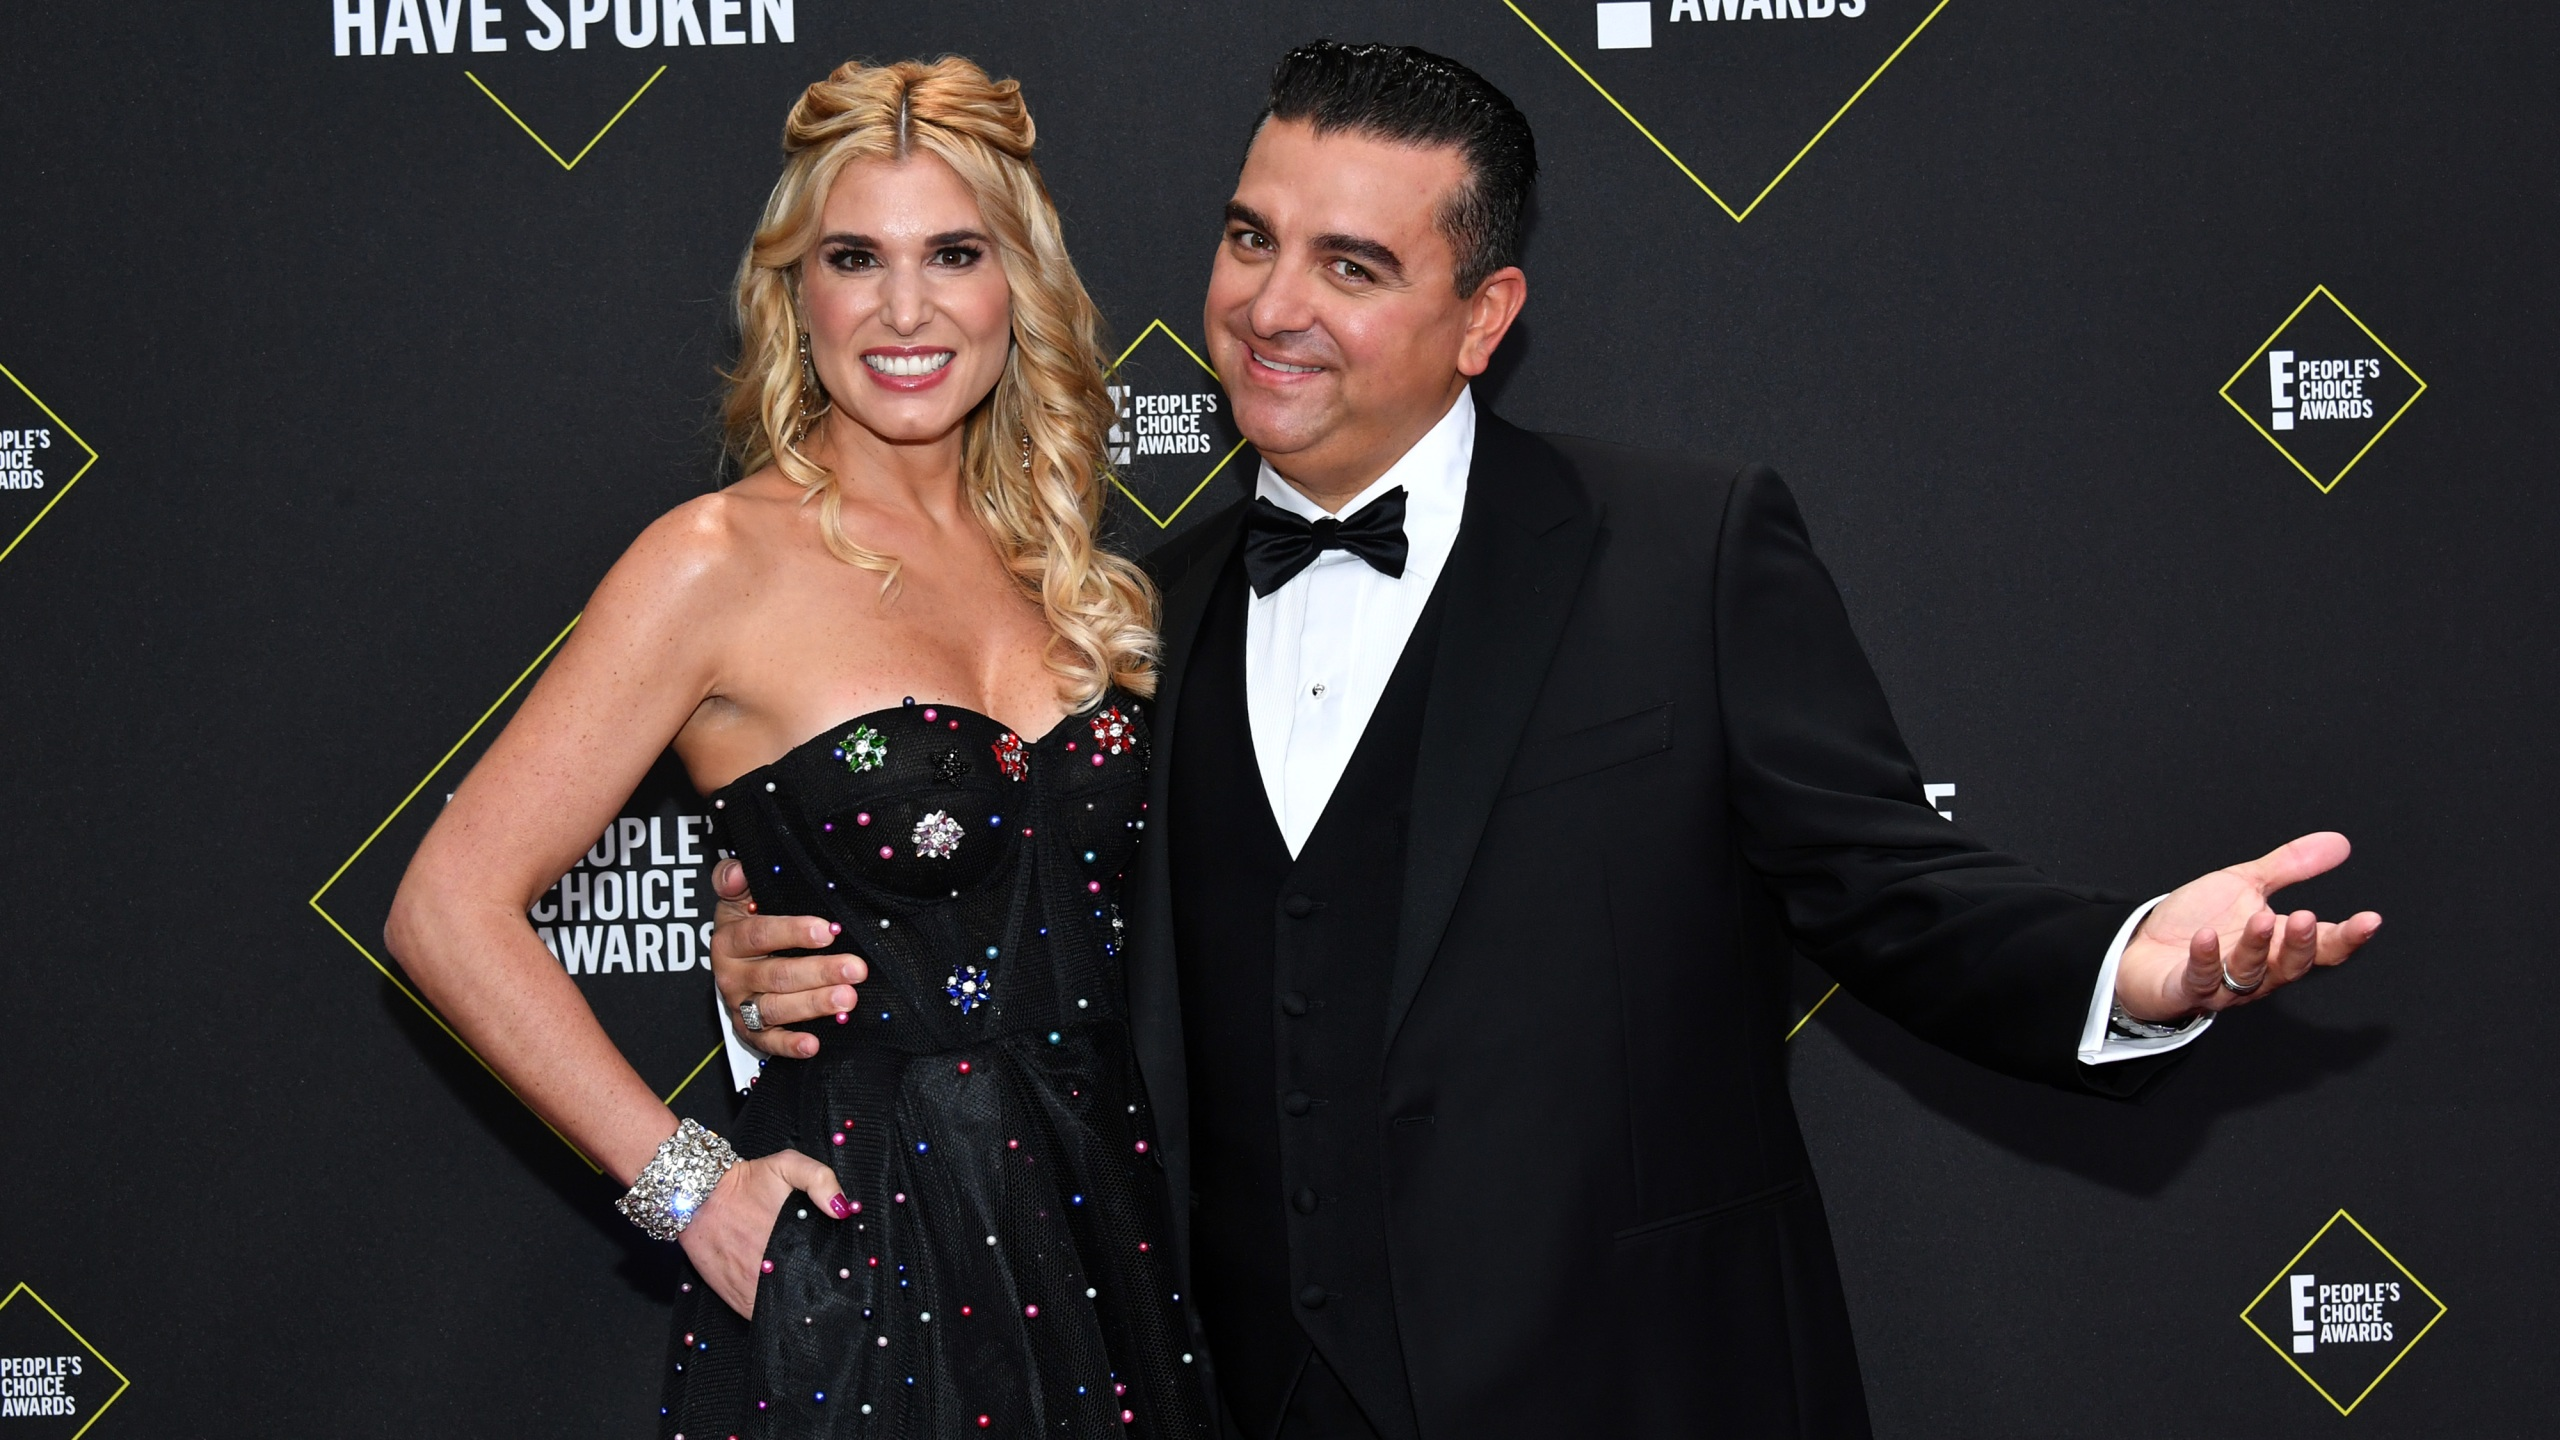 Lisa Valastro and Buddy Valastro arrive at the 2019 E! People's Choice Awards. (Photo by: Amy Sussman/E! Entertainment/NBCU Photo Bank)